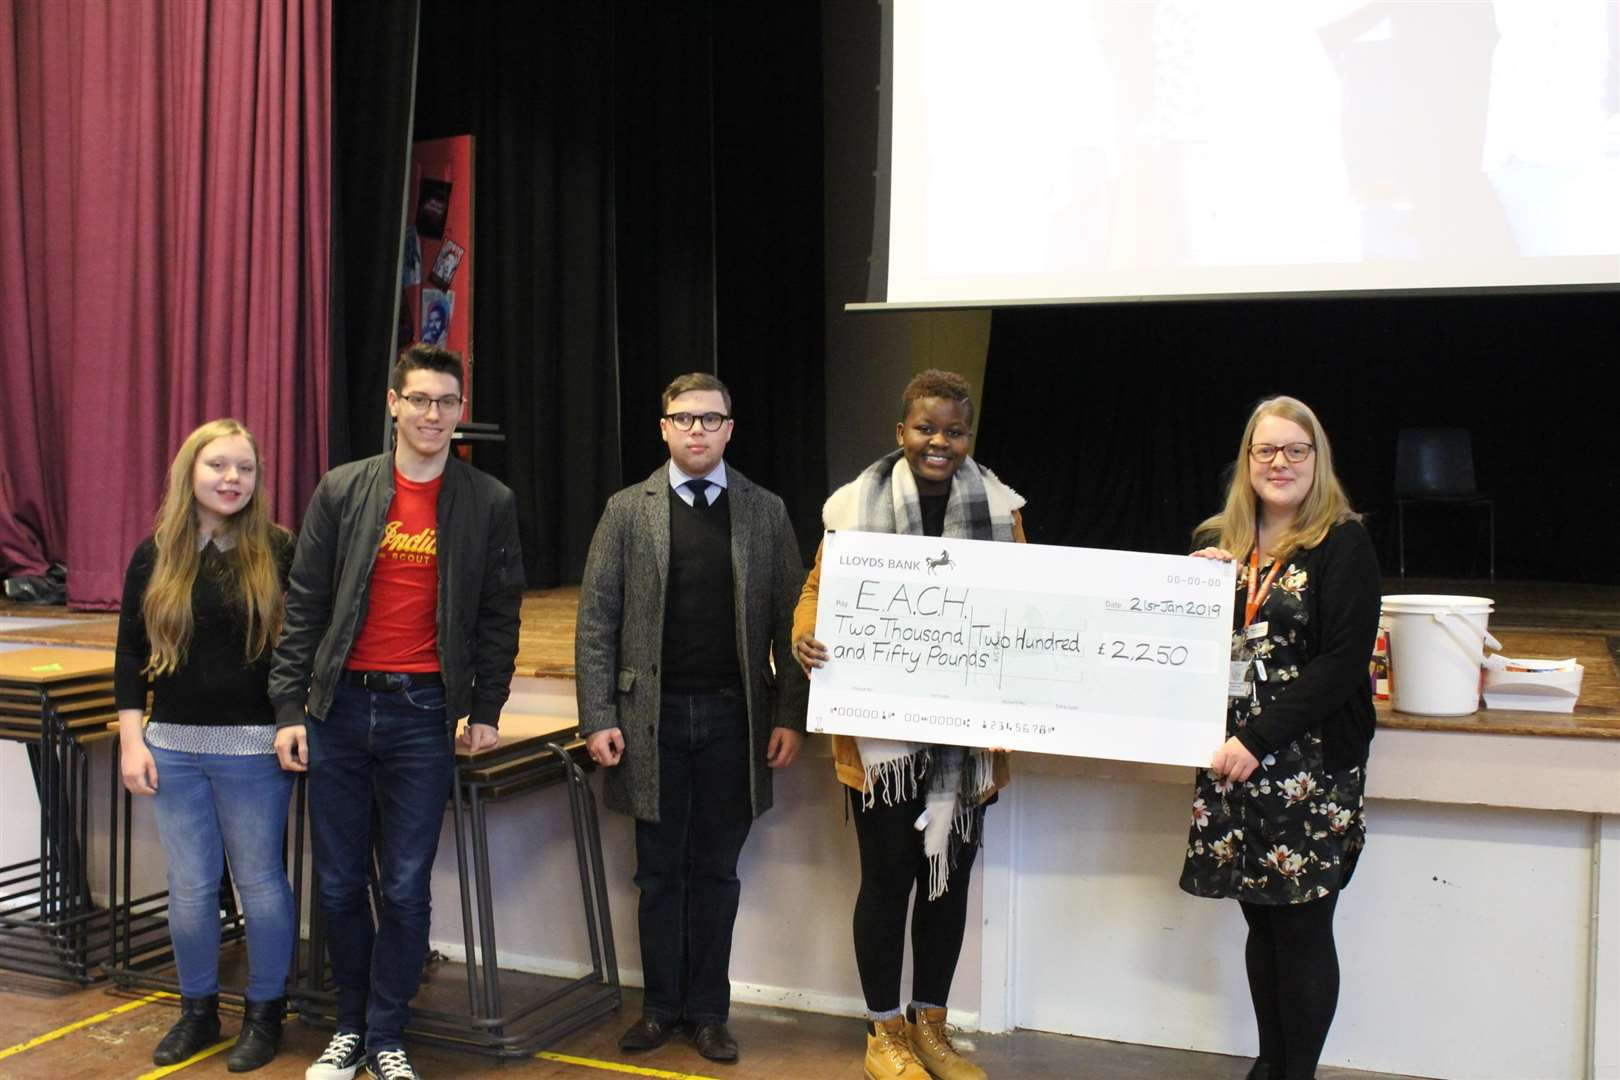 Pupils present their cheque to Each